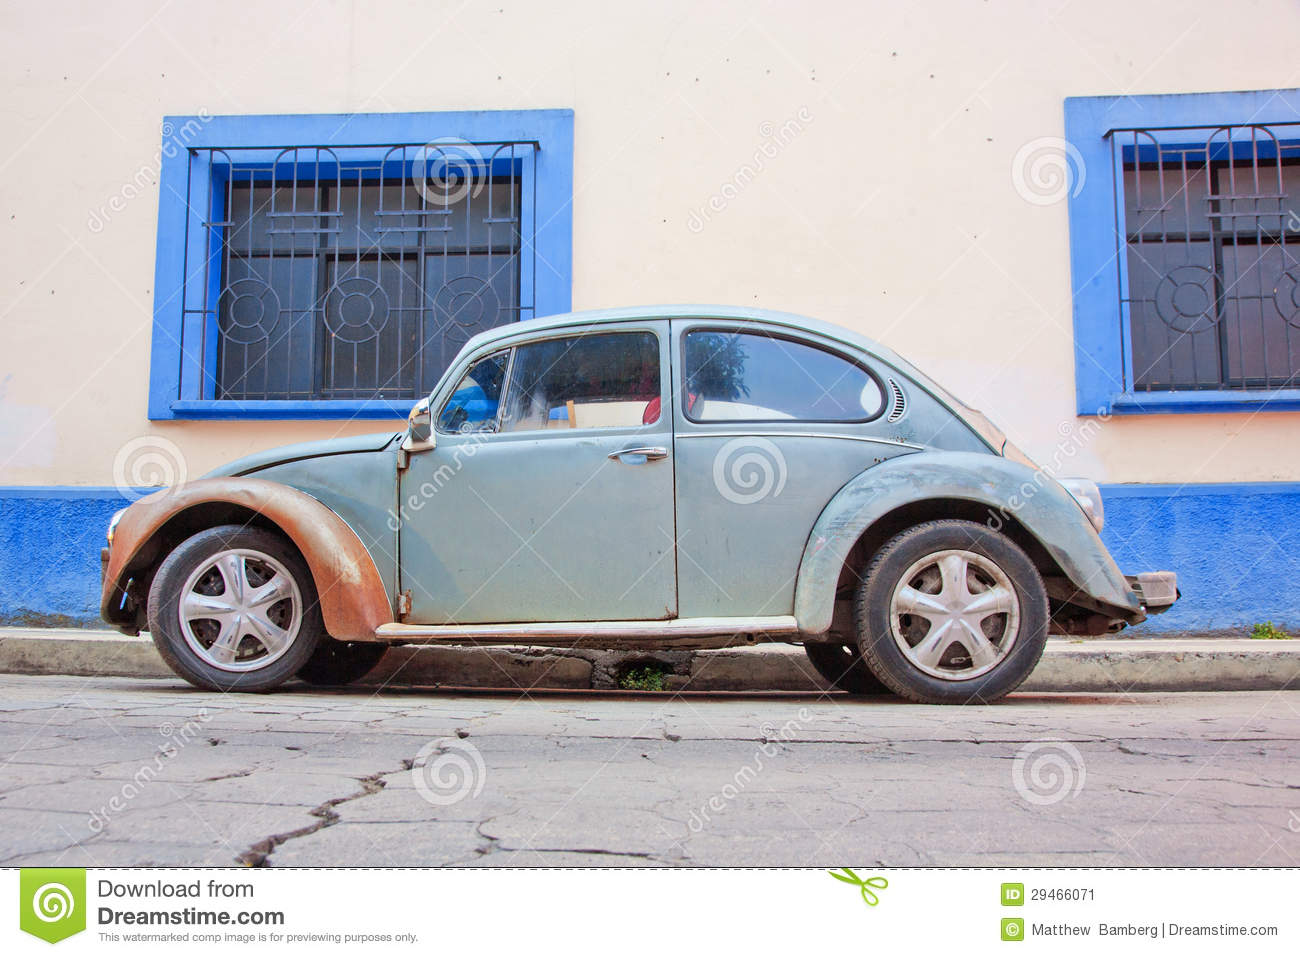 vw in mexico stock image image 29466071. Black Bedroom Furniture Sets. Home Design Ideas